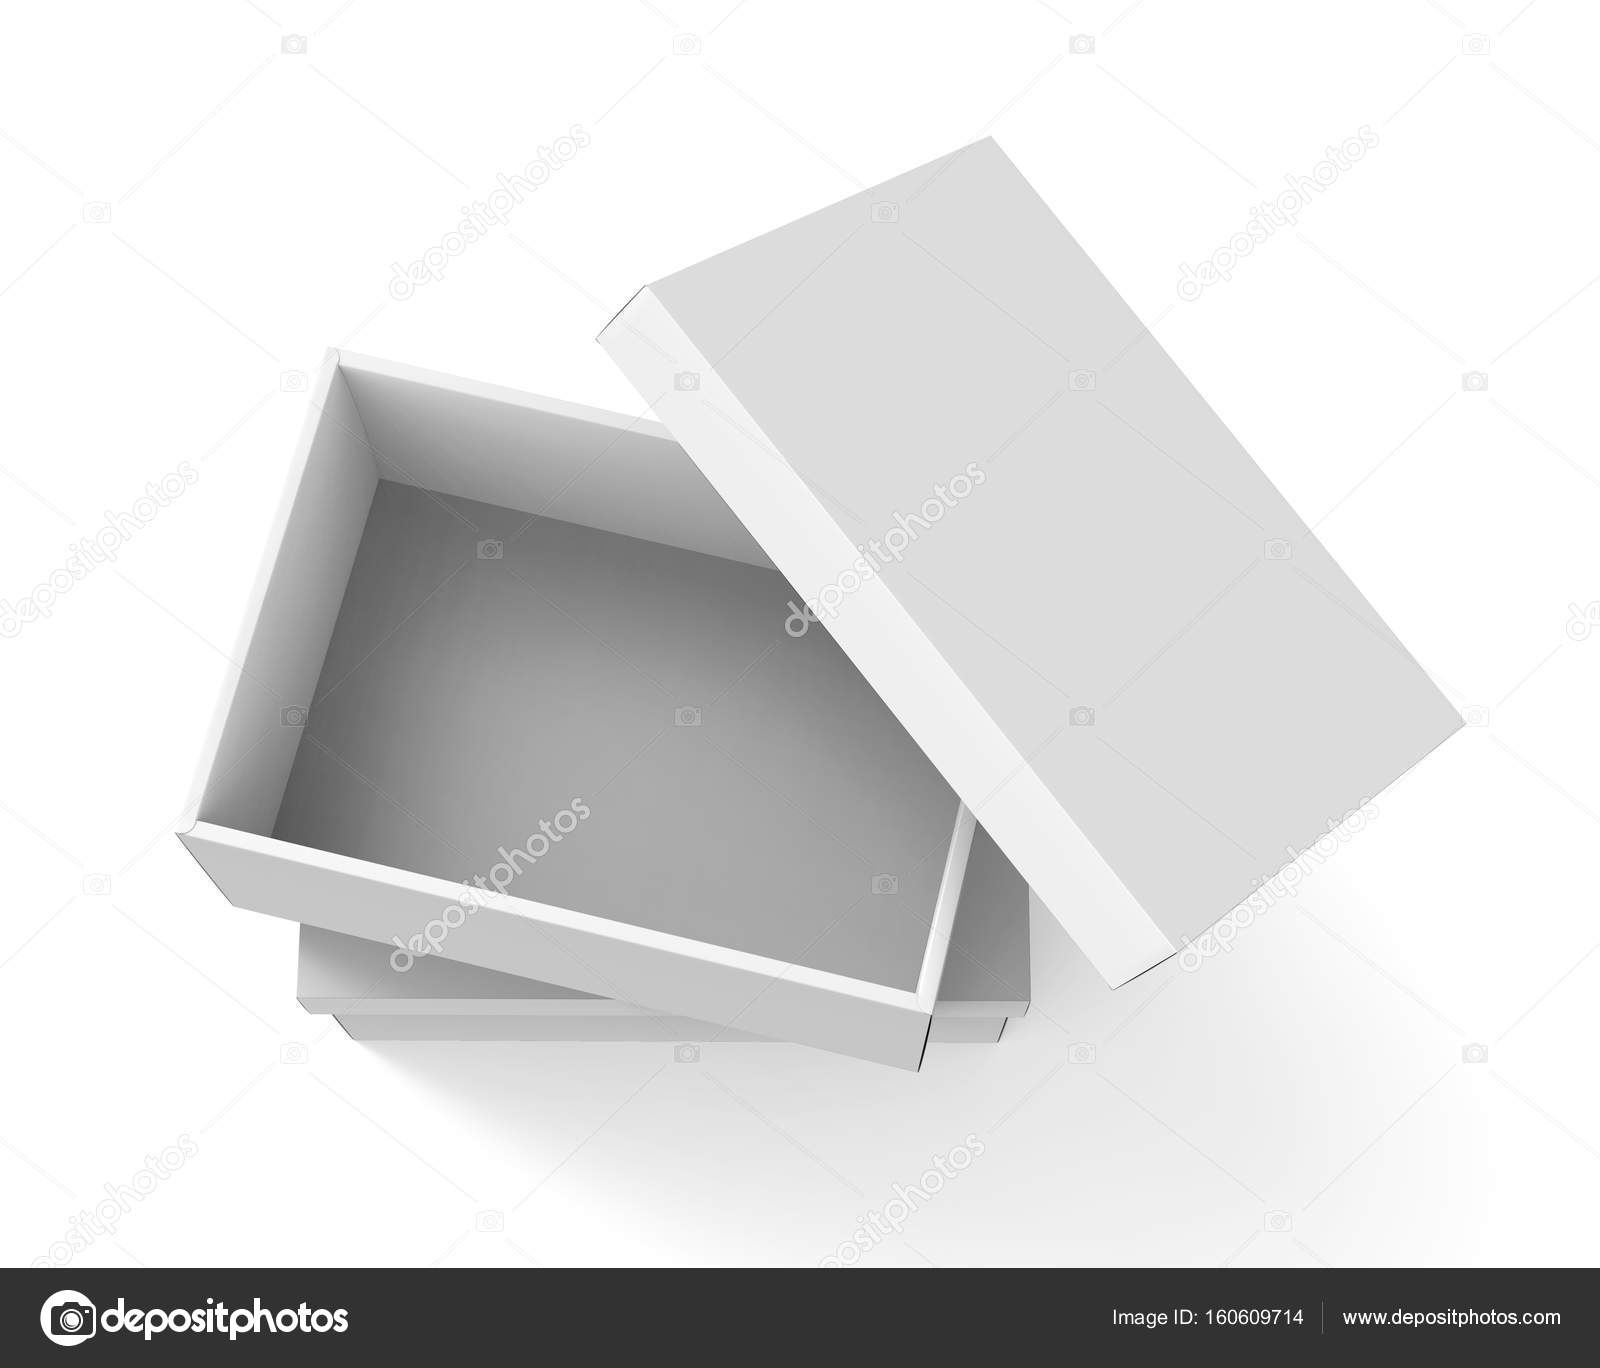 Blank paper box template stock photo kchungtw 160609714 blank paper box template stock photo maxwellsz